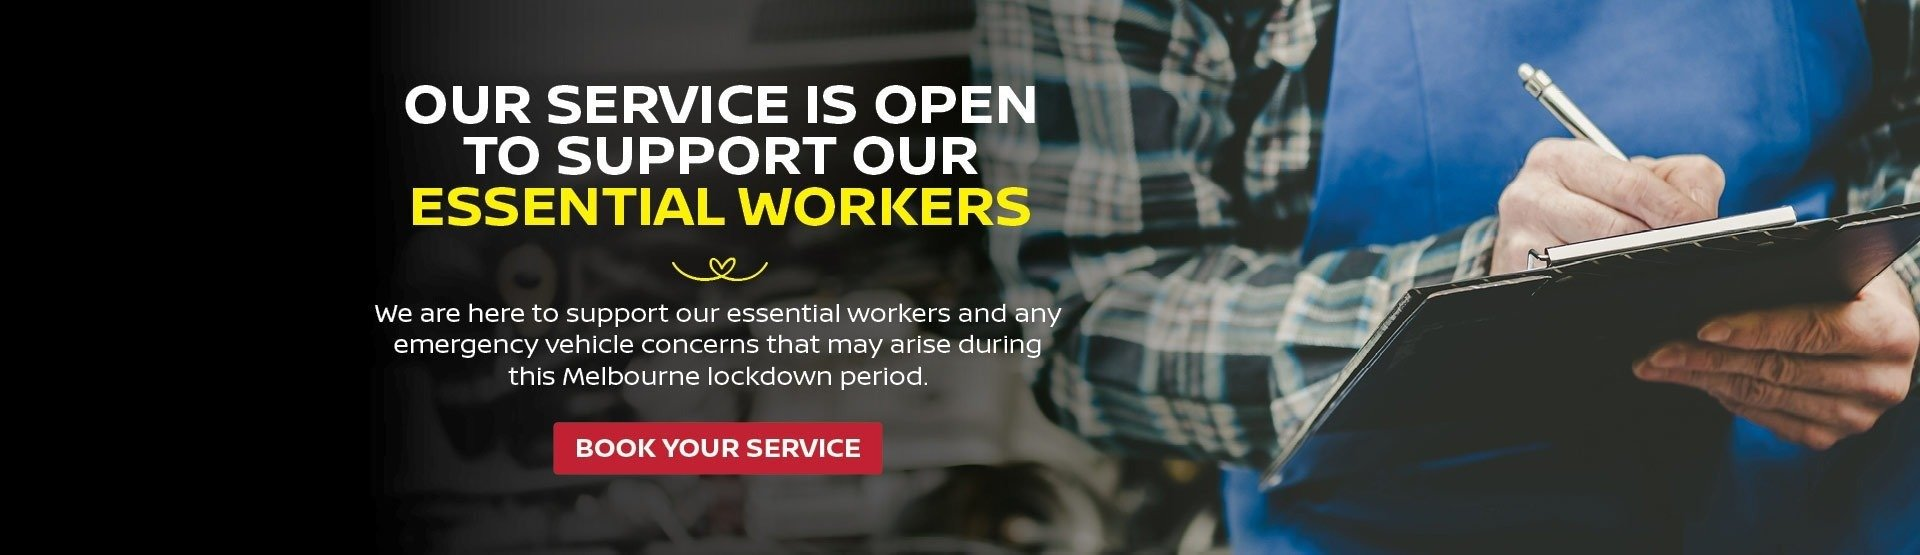 Yarra Valley Nissan - We Are Open For Service